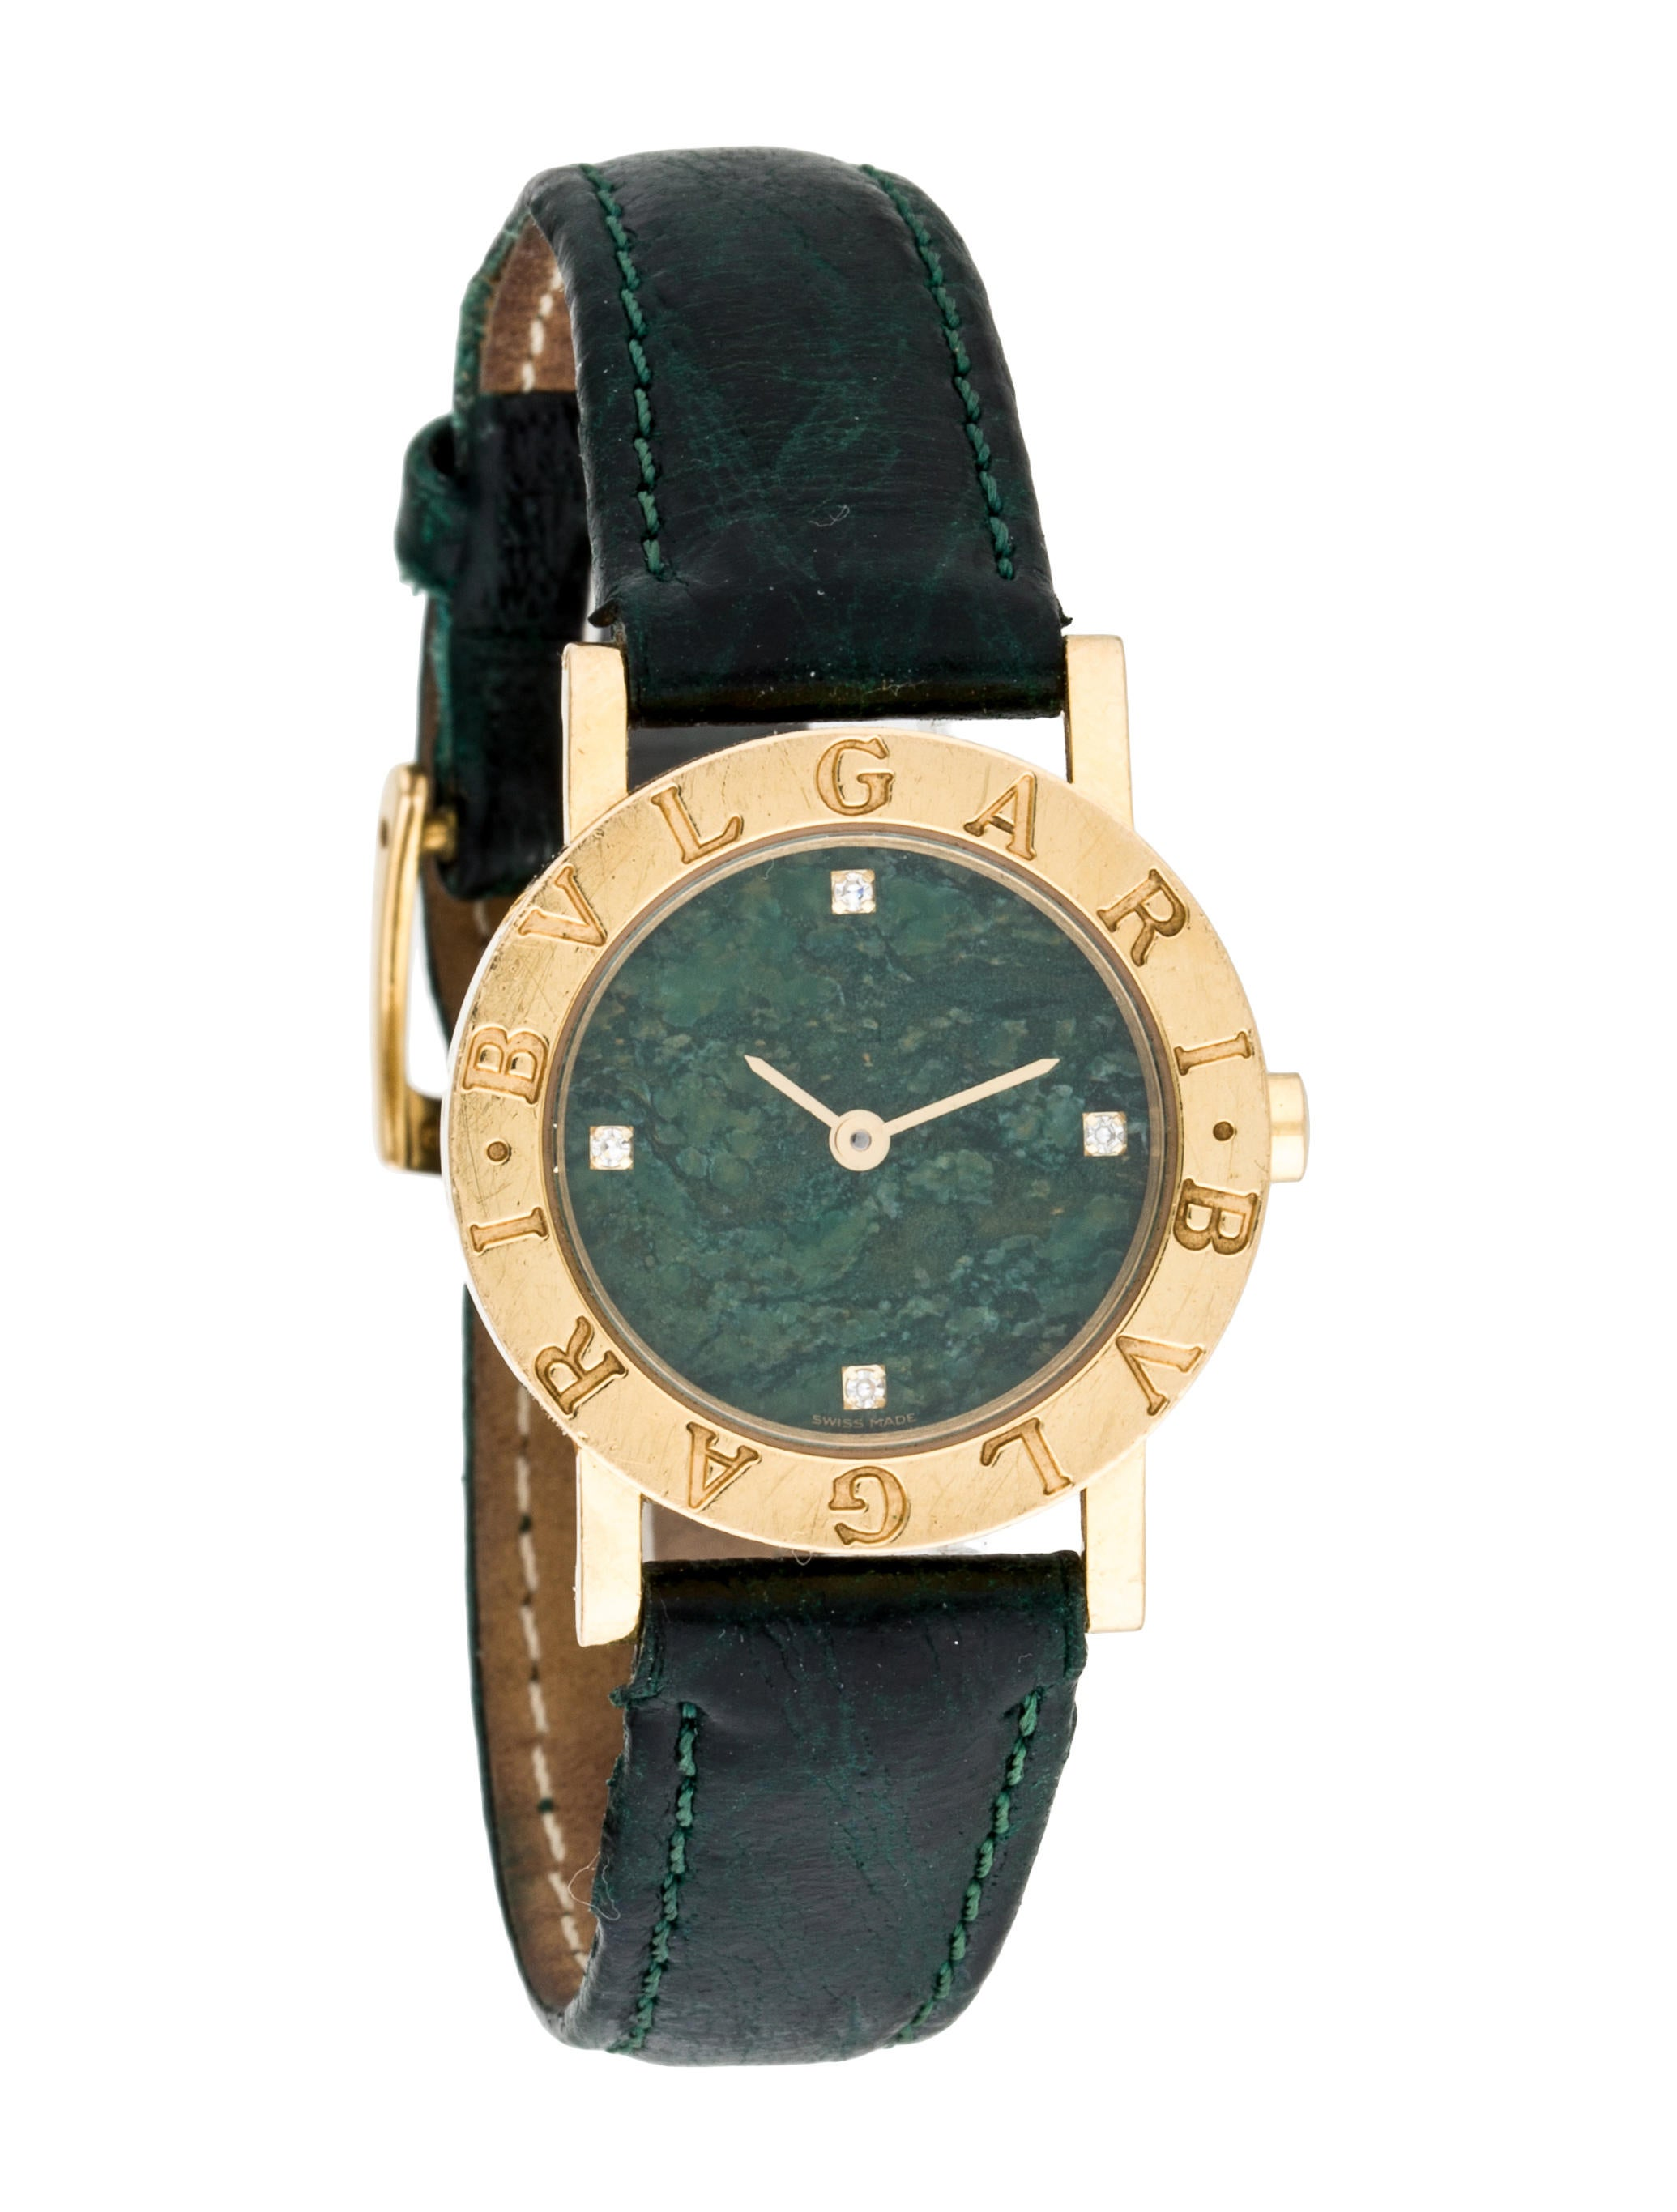 Bvlgari bvlgari watch strap bul24058 the realreal for Bvlgari watches